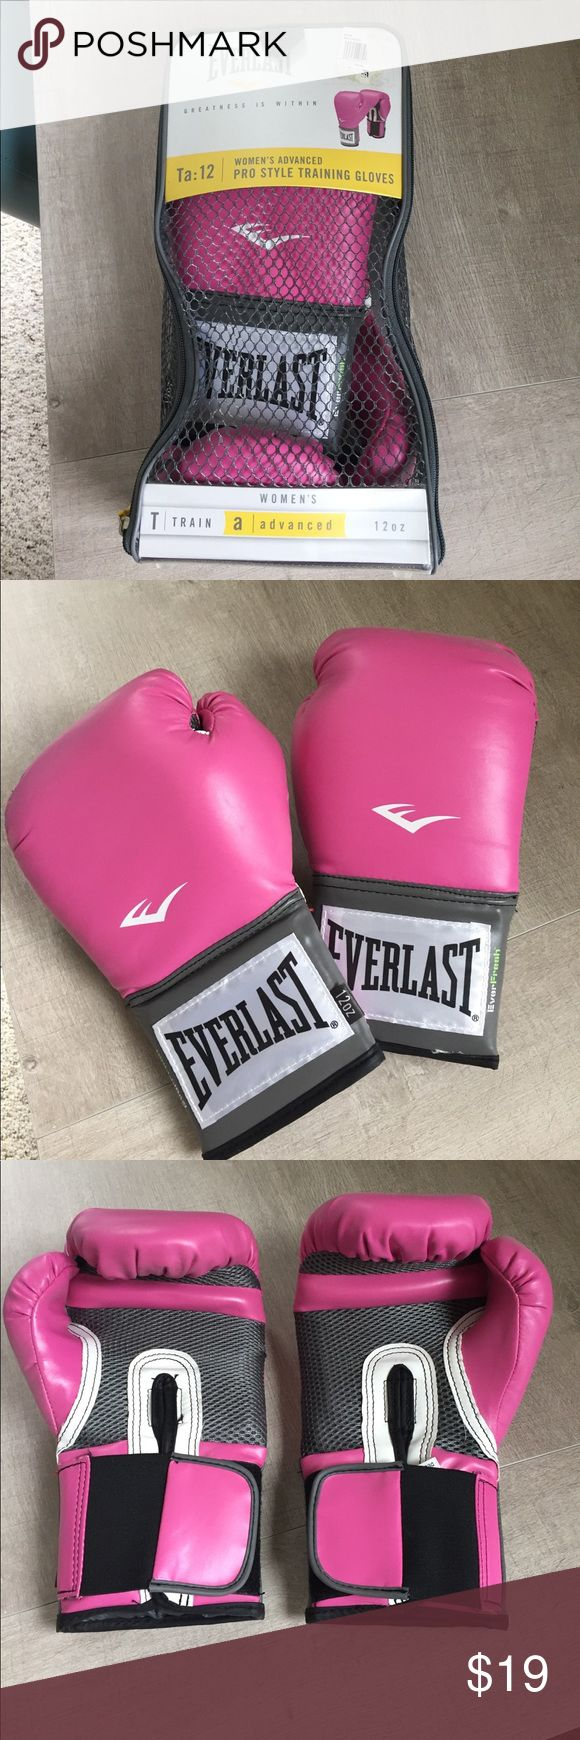 Everlast Boxing Gloves I have never worn these boxing gloves they've just been sitting in my closet, brand-new in their original packaging. Everlast Other